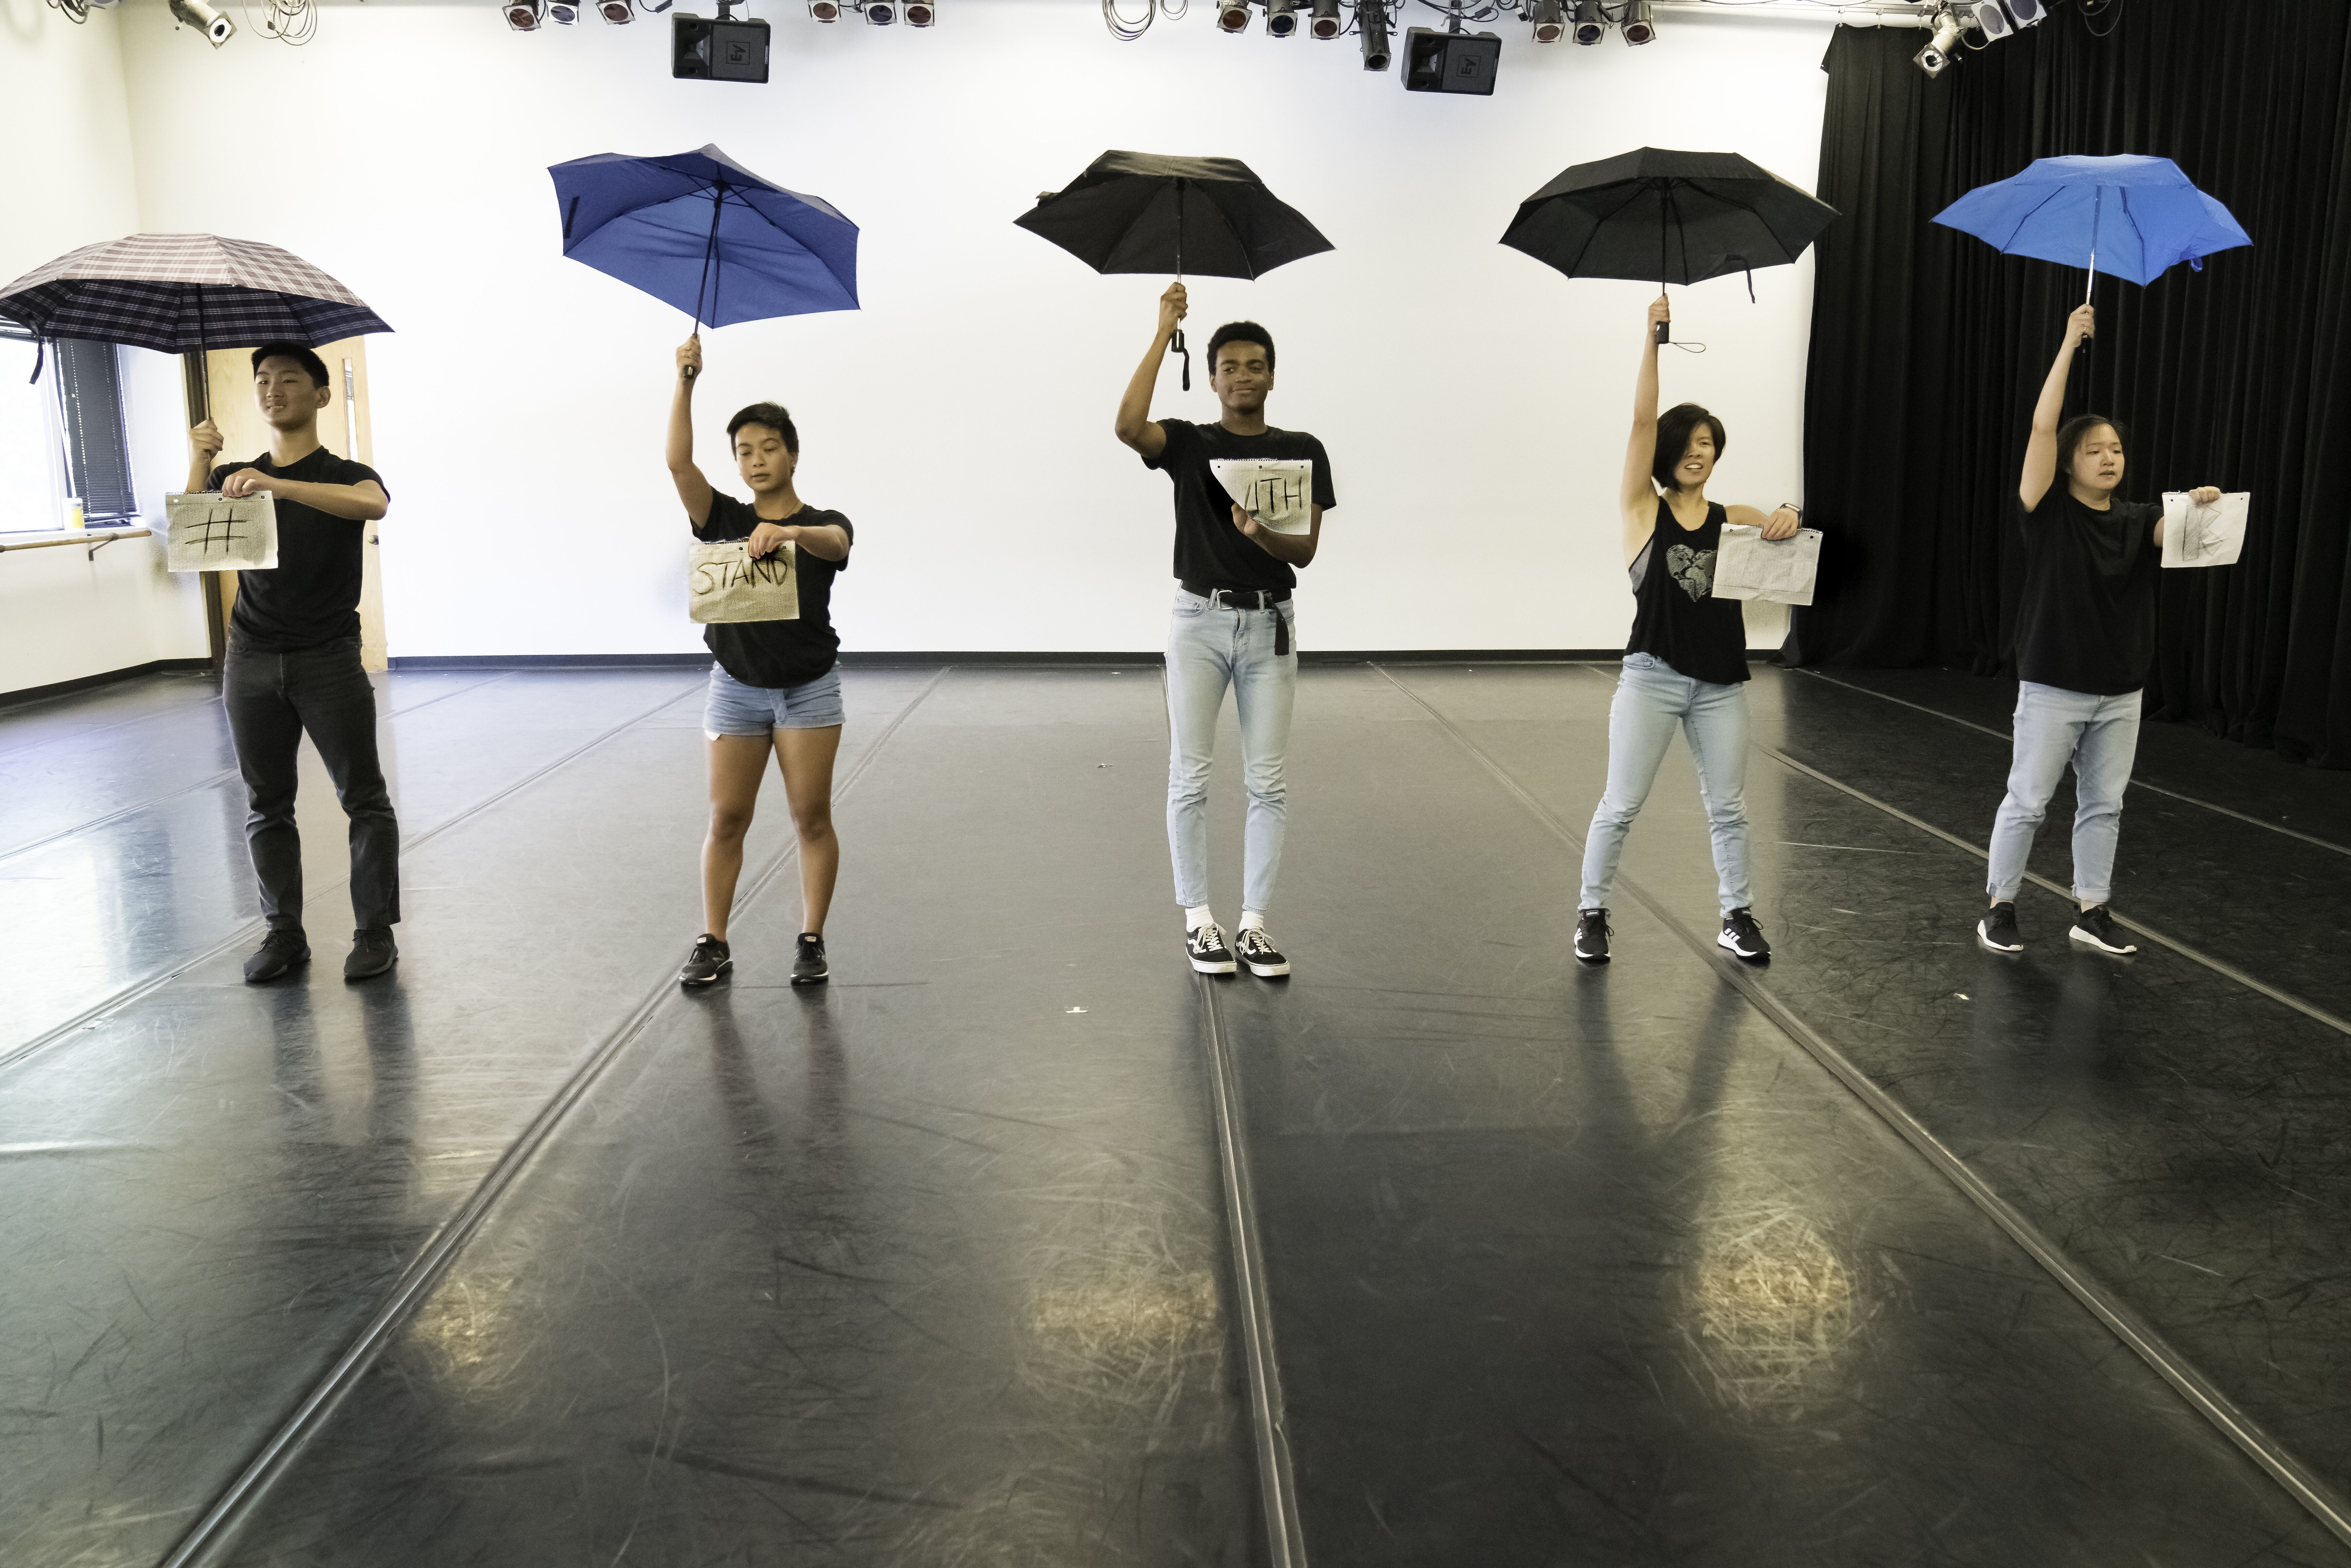 Four students stand with signs in front of them on one hand and umbrellas open and up in the other hand on a practice stage.